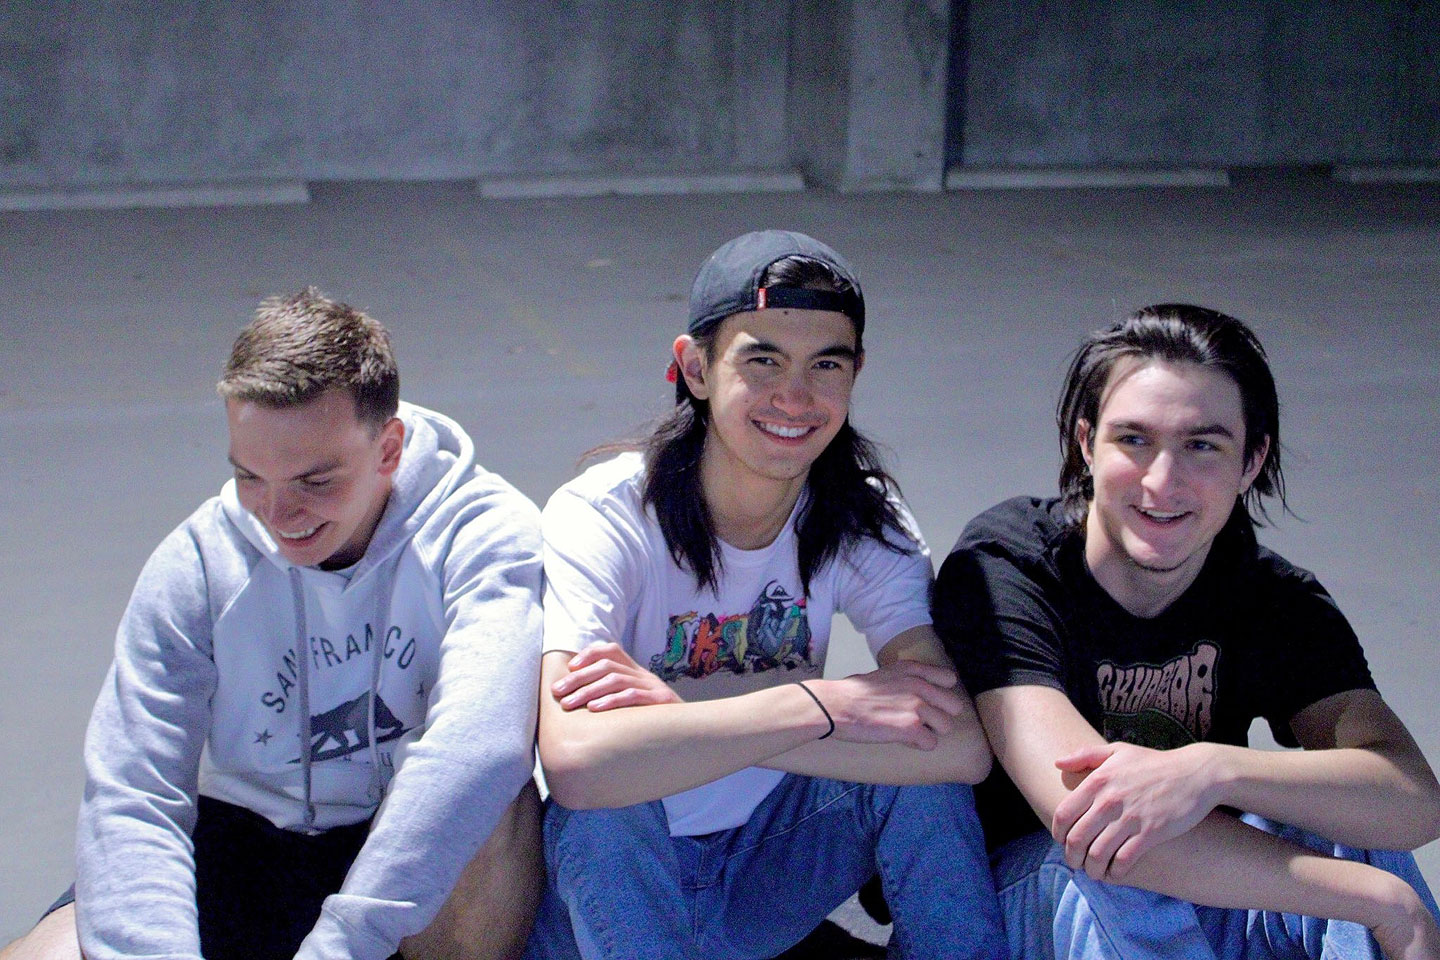 Surrender Rome band pic